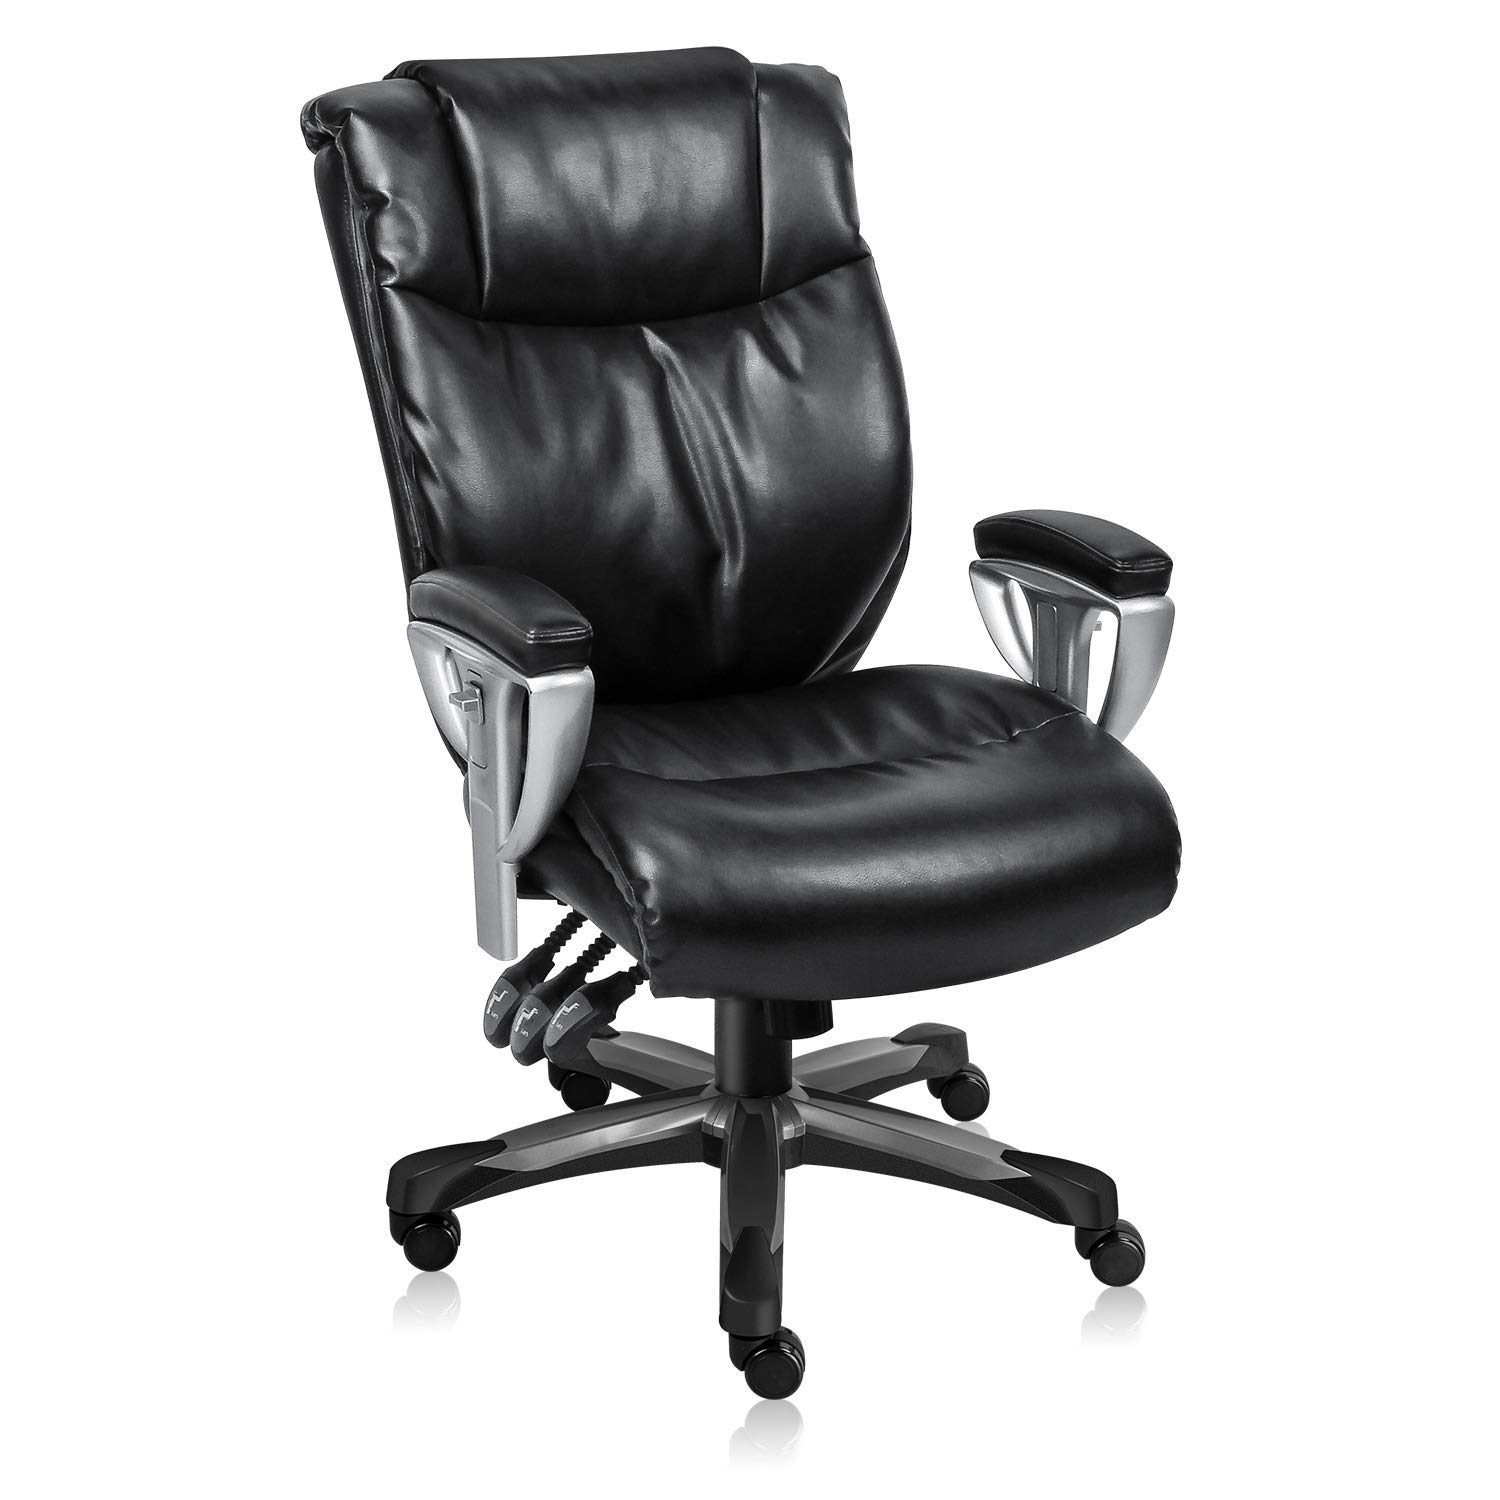 MDL Furniture Executive Office Chair Ergonomic Office Chair with Adjustable Backrest and Armrests Multifunction Heavy Duty 300lbs Office Chair with Tilt Lock Function(Black)